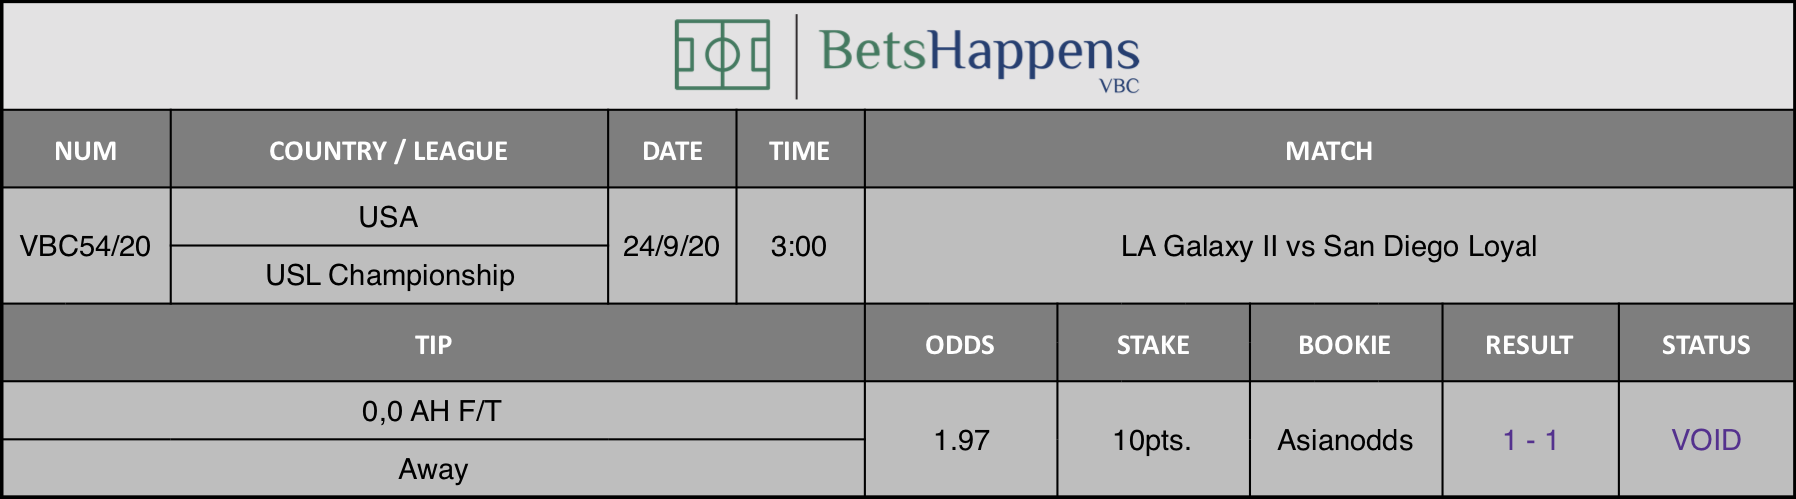 Results of our advice for the LA Galaxy II vs San Diego Loyal game where 0.0 AH F / T Away is recommended.